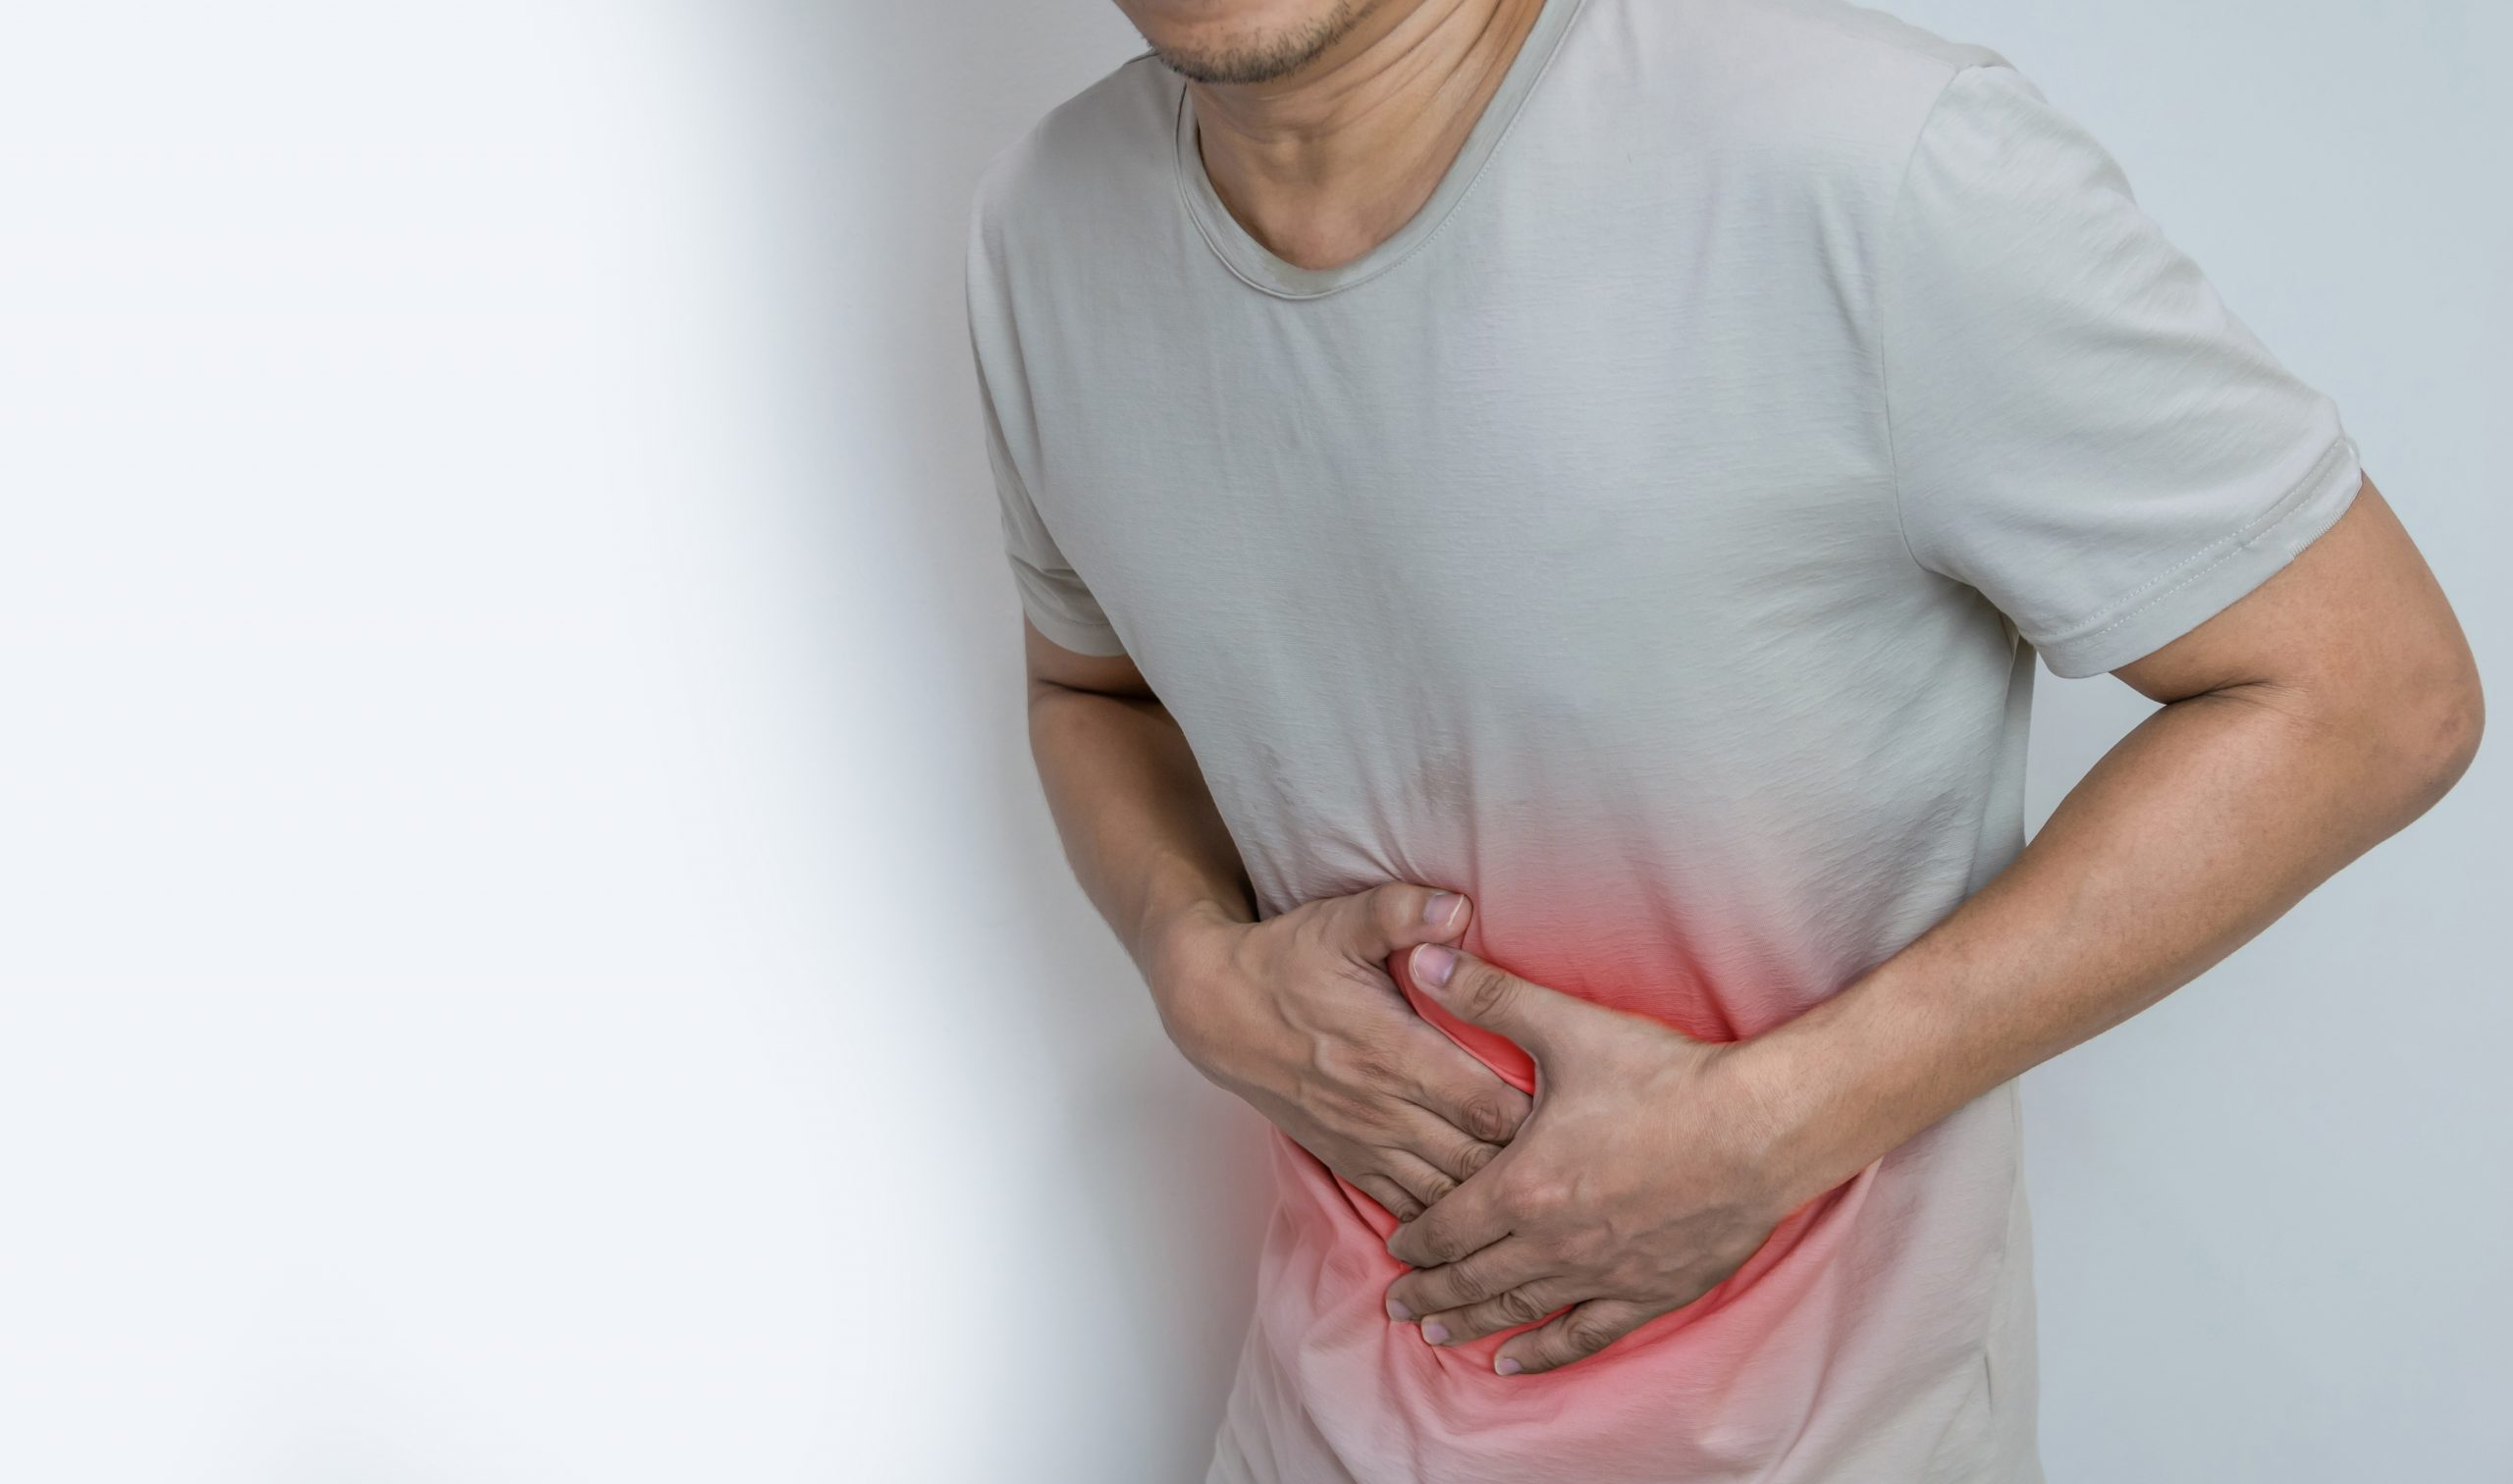 man-suffering-from-stomach-ache-with-both-palm-around-waistline-to-show-pain-and-injury-on-belly-area